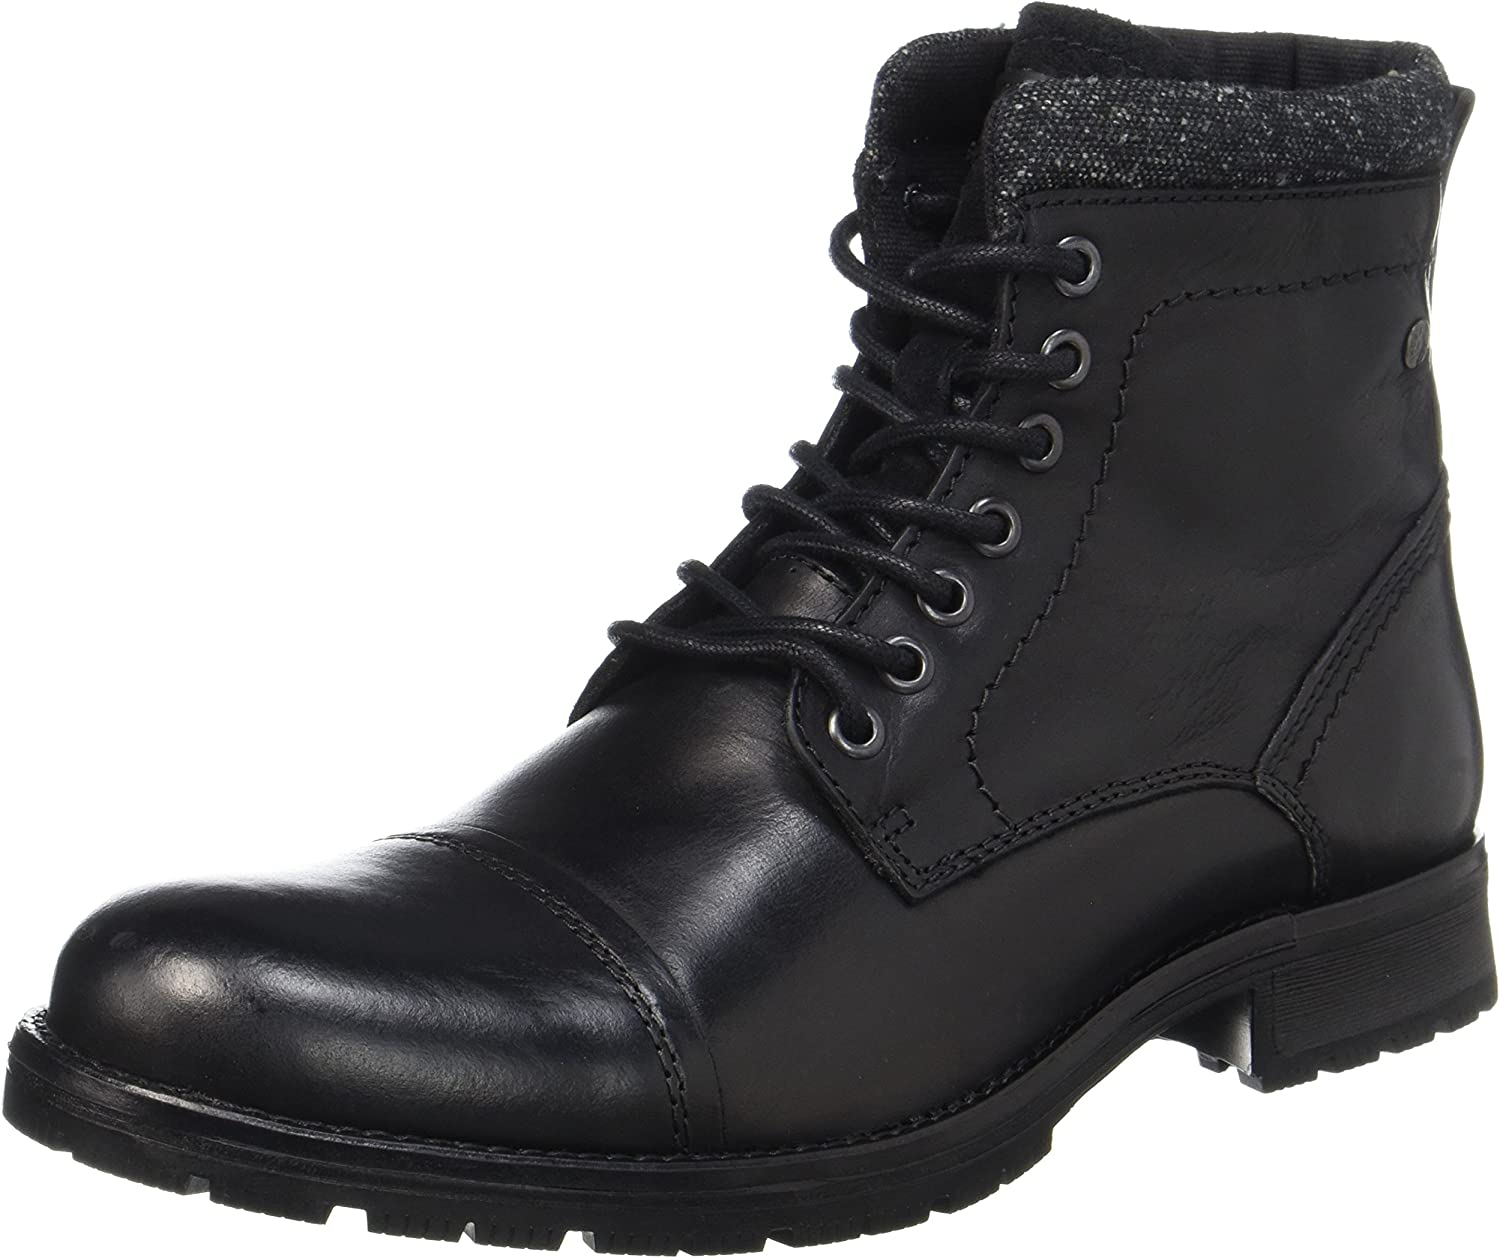 Jack & Jones Jfwmarly Leather Black, Botas Clasicas para Hombre